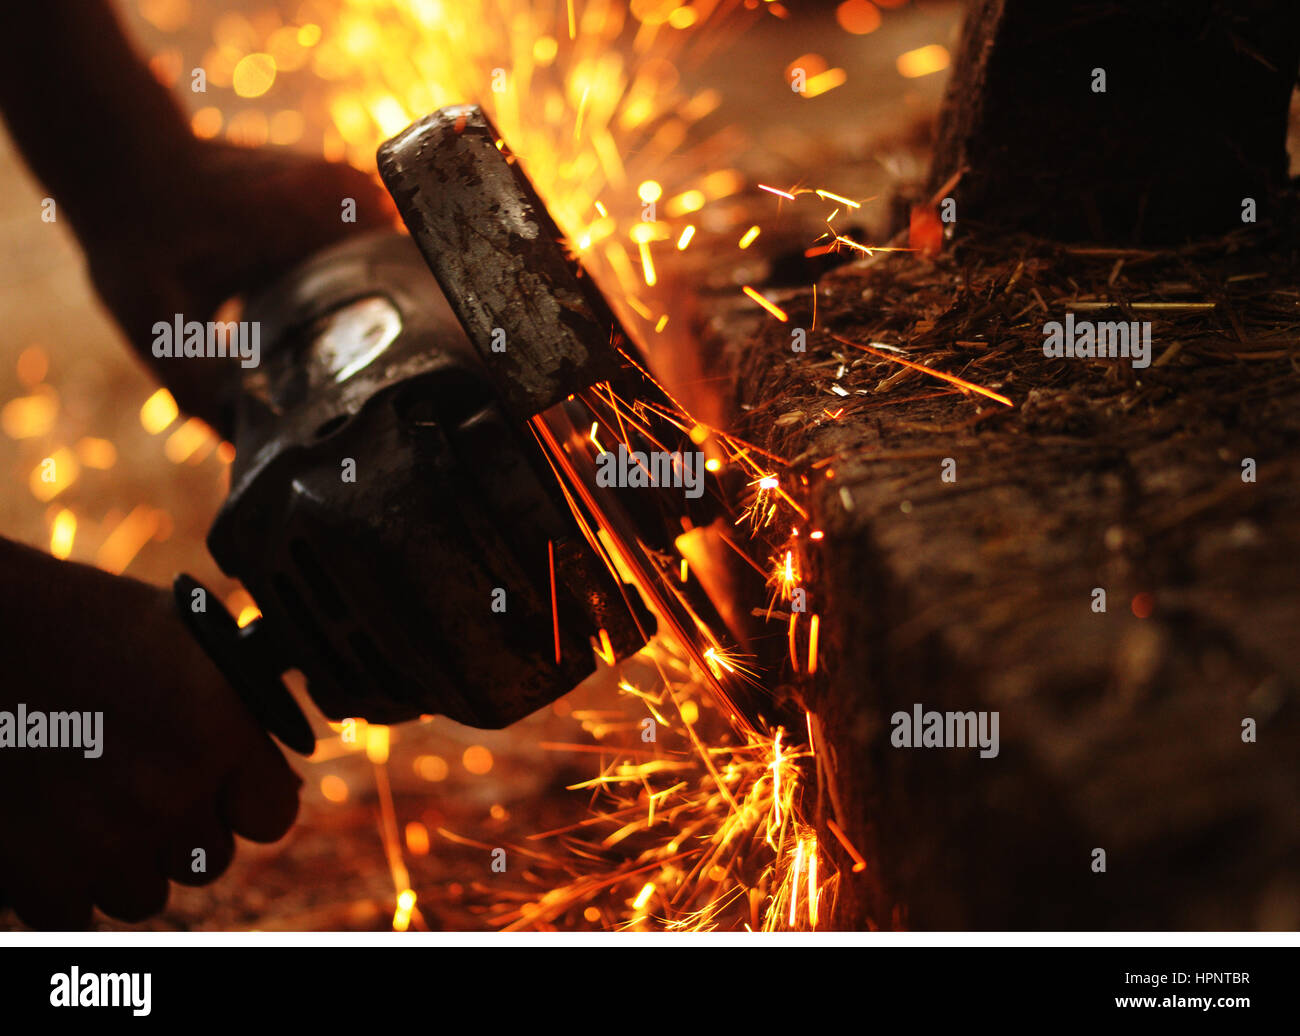 Angle grinder working with sparks flying - Stock Image